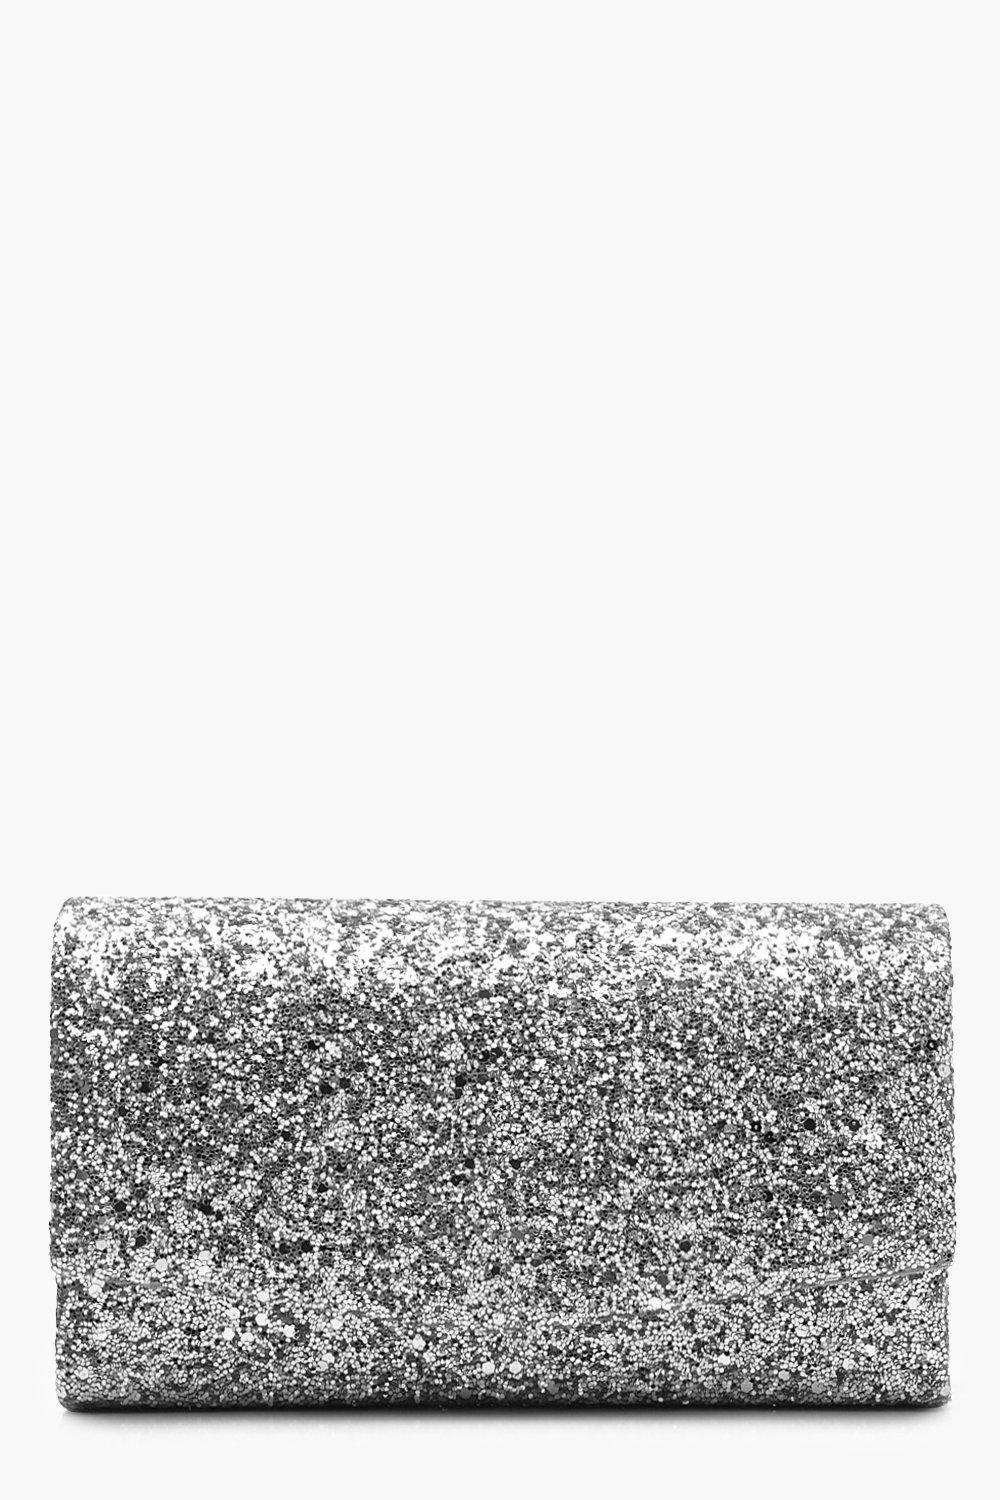 boohoo Womens Structured Glitter Envelope Clutch Bag With Chain - Grey - One Size, Grey